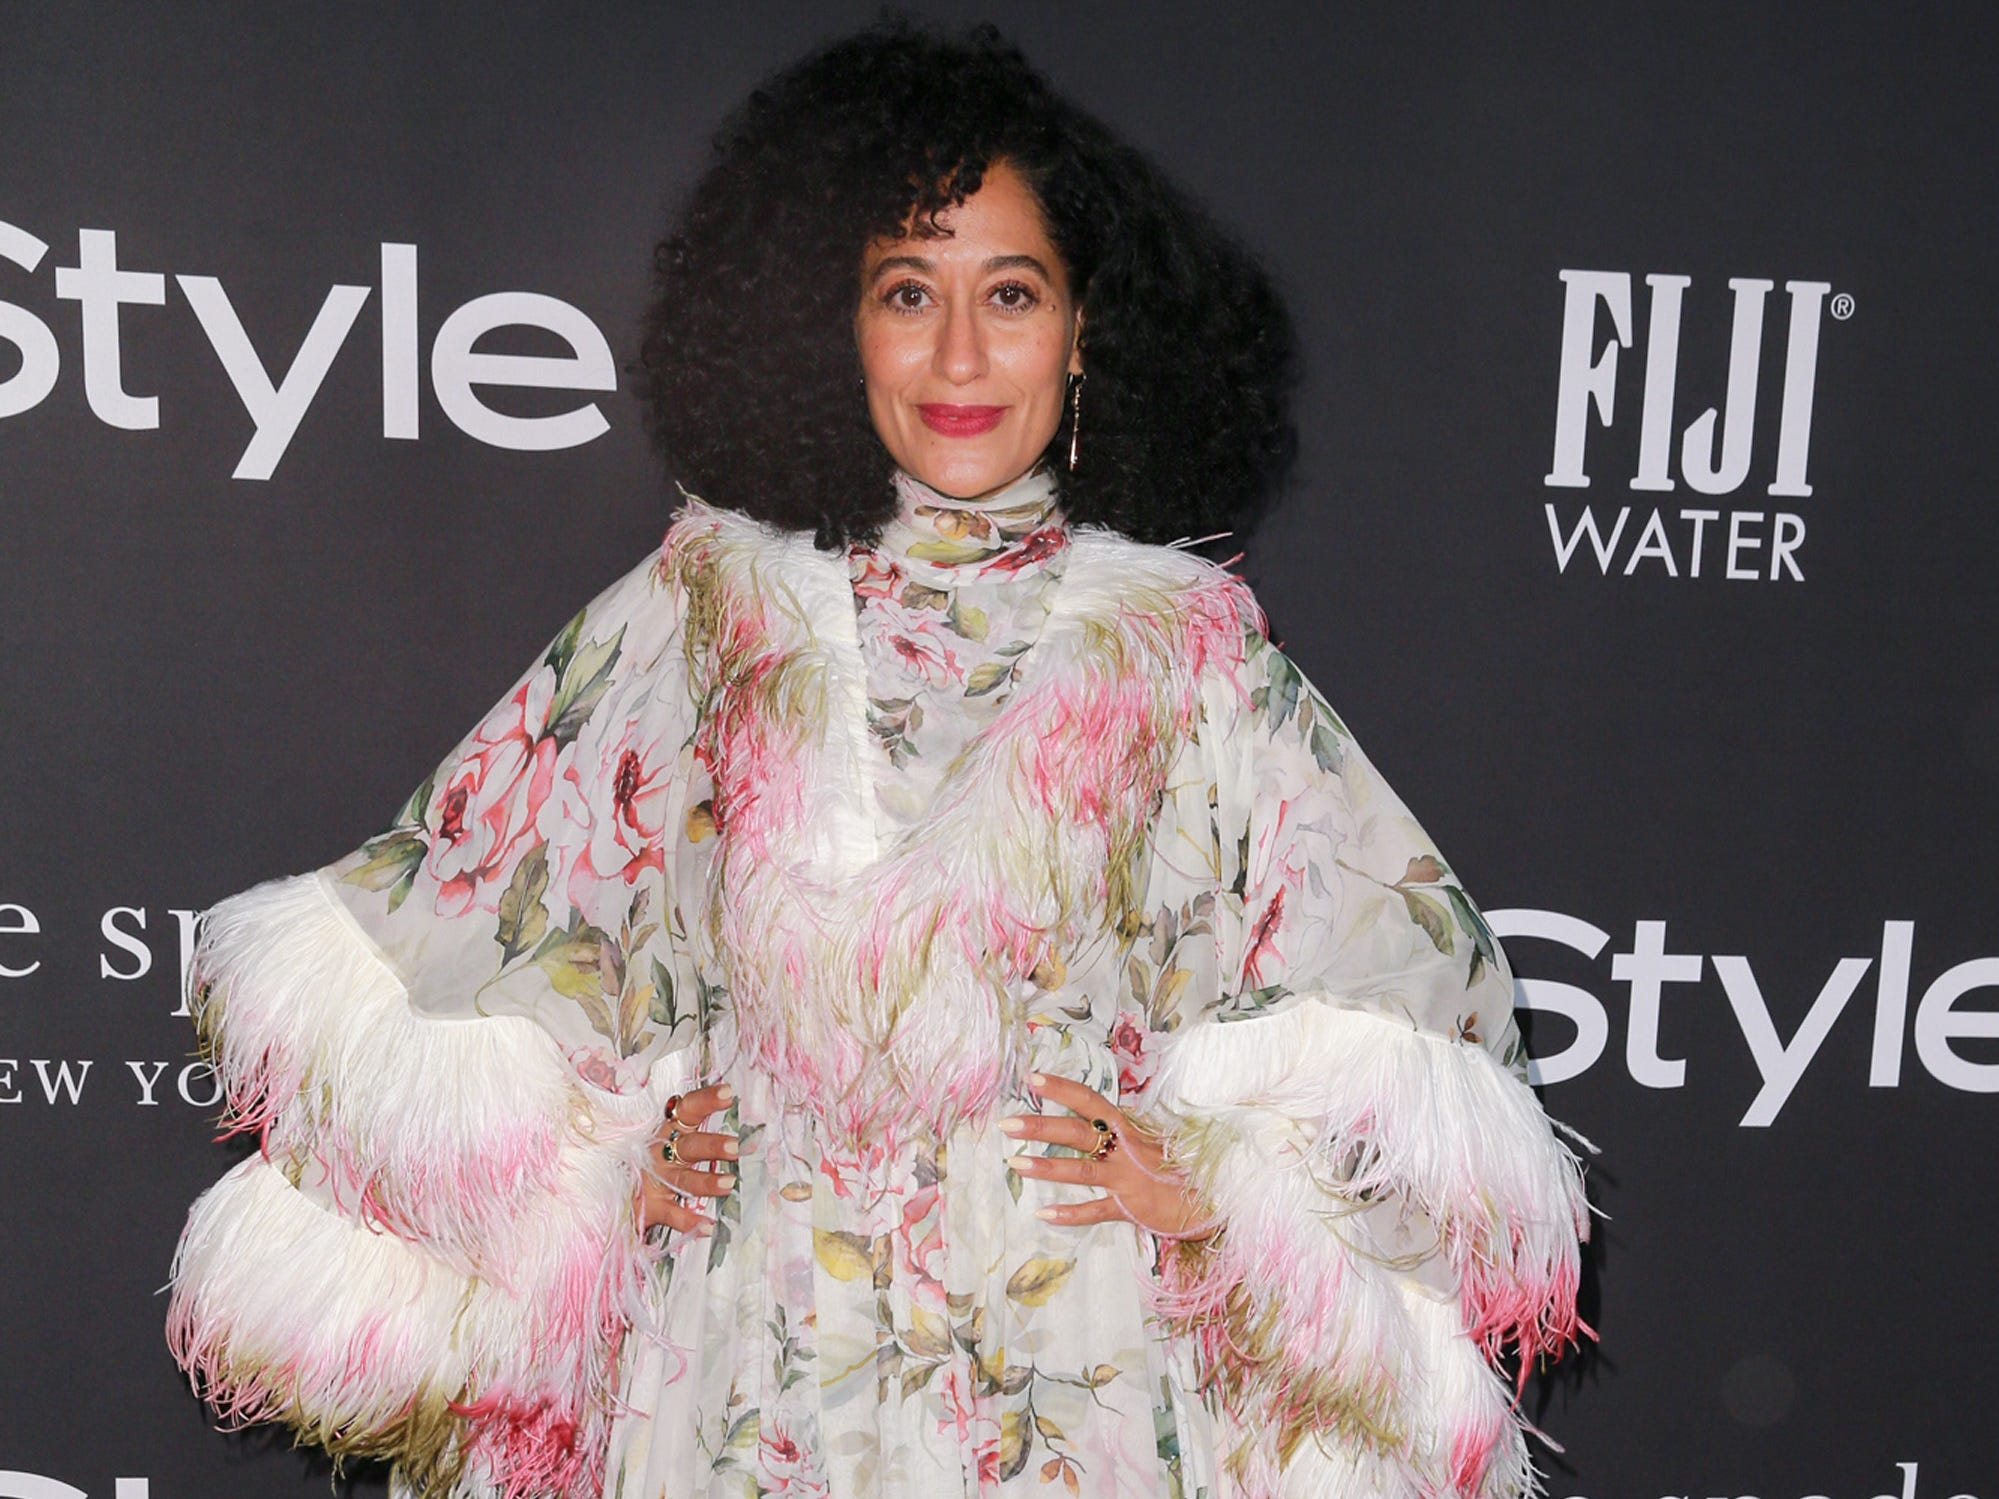 LOS ANGELES, CA - OCTOBER 22:  Tracee Ellis Ross attends the 2018 InStyle Awards at The Getty Center on October 22, 2018 in Los Angeles, California.  (Photo by Rich Fury/Getty Images) ORG XMIT: 775236597 ORIG FILE ID: 1052793176